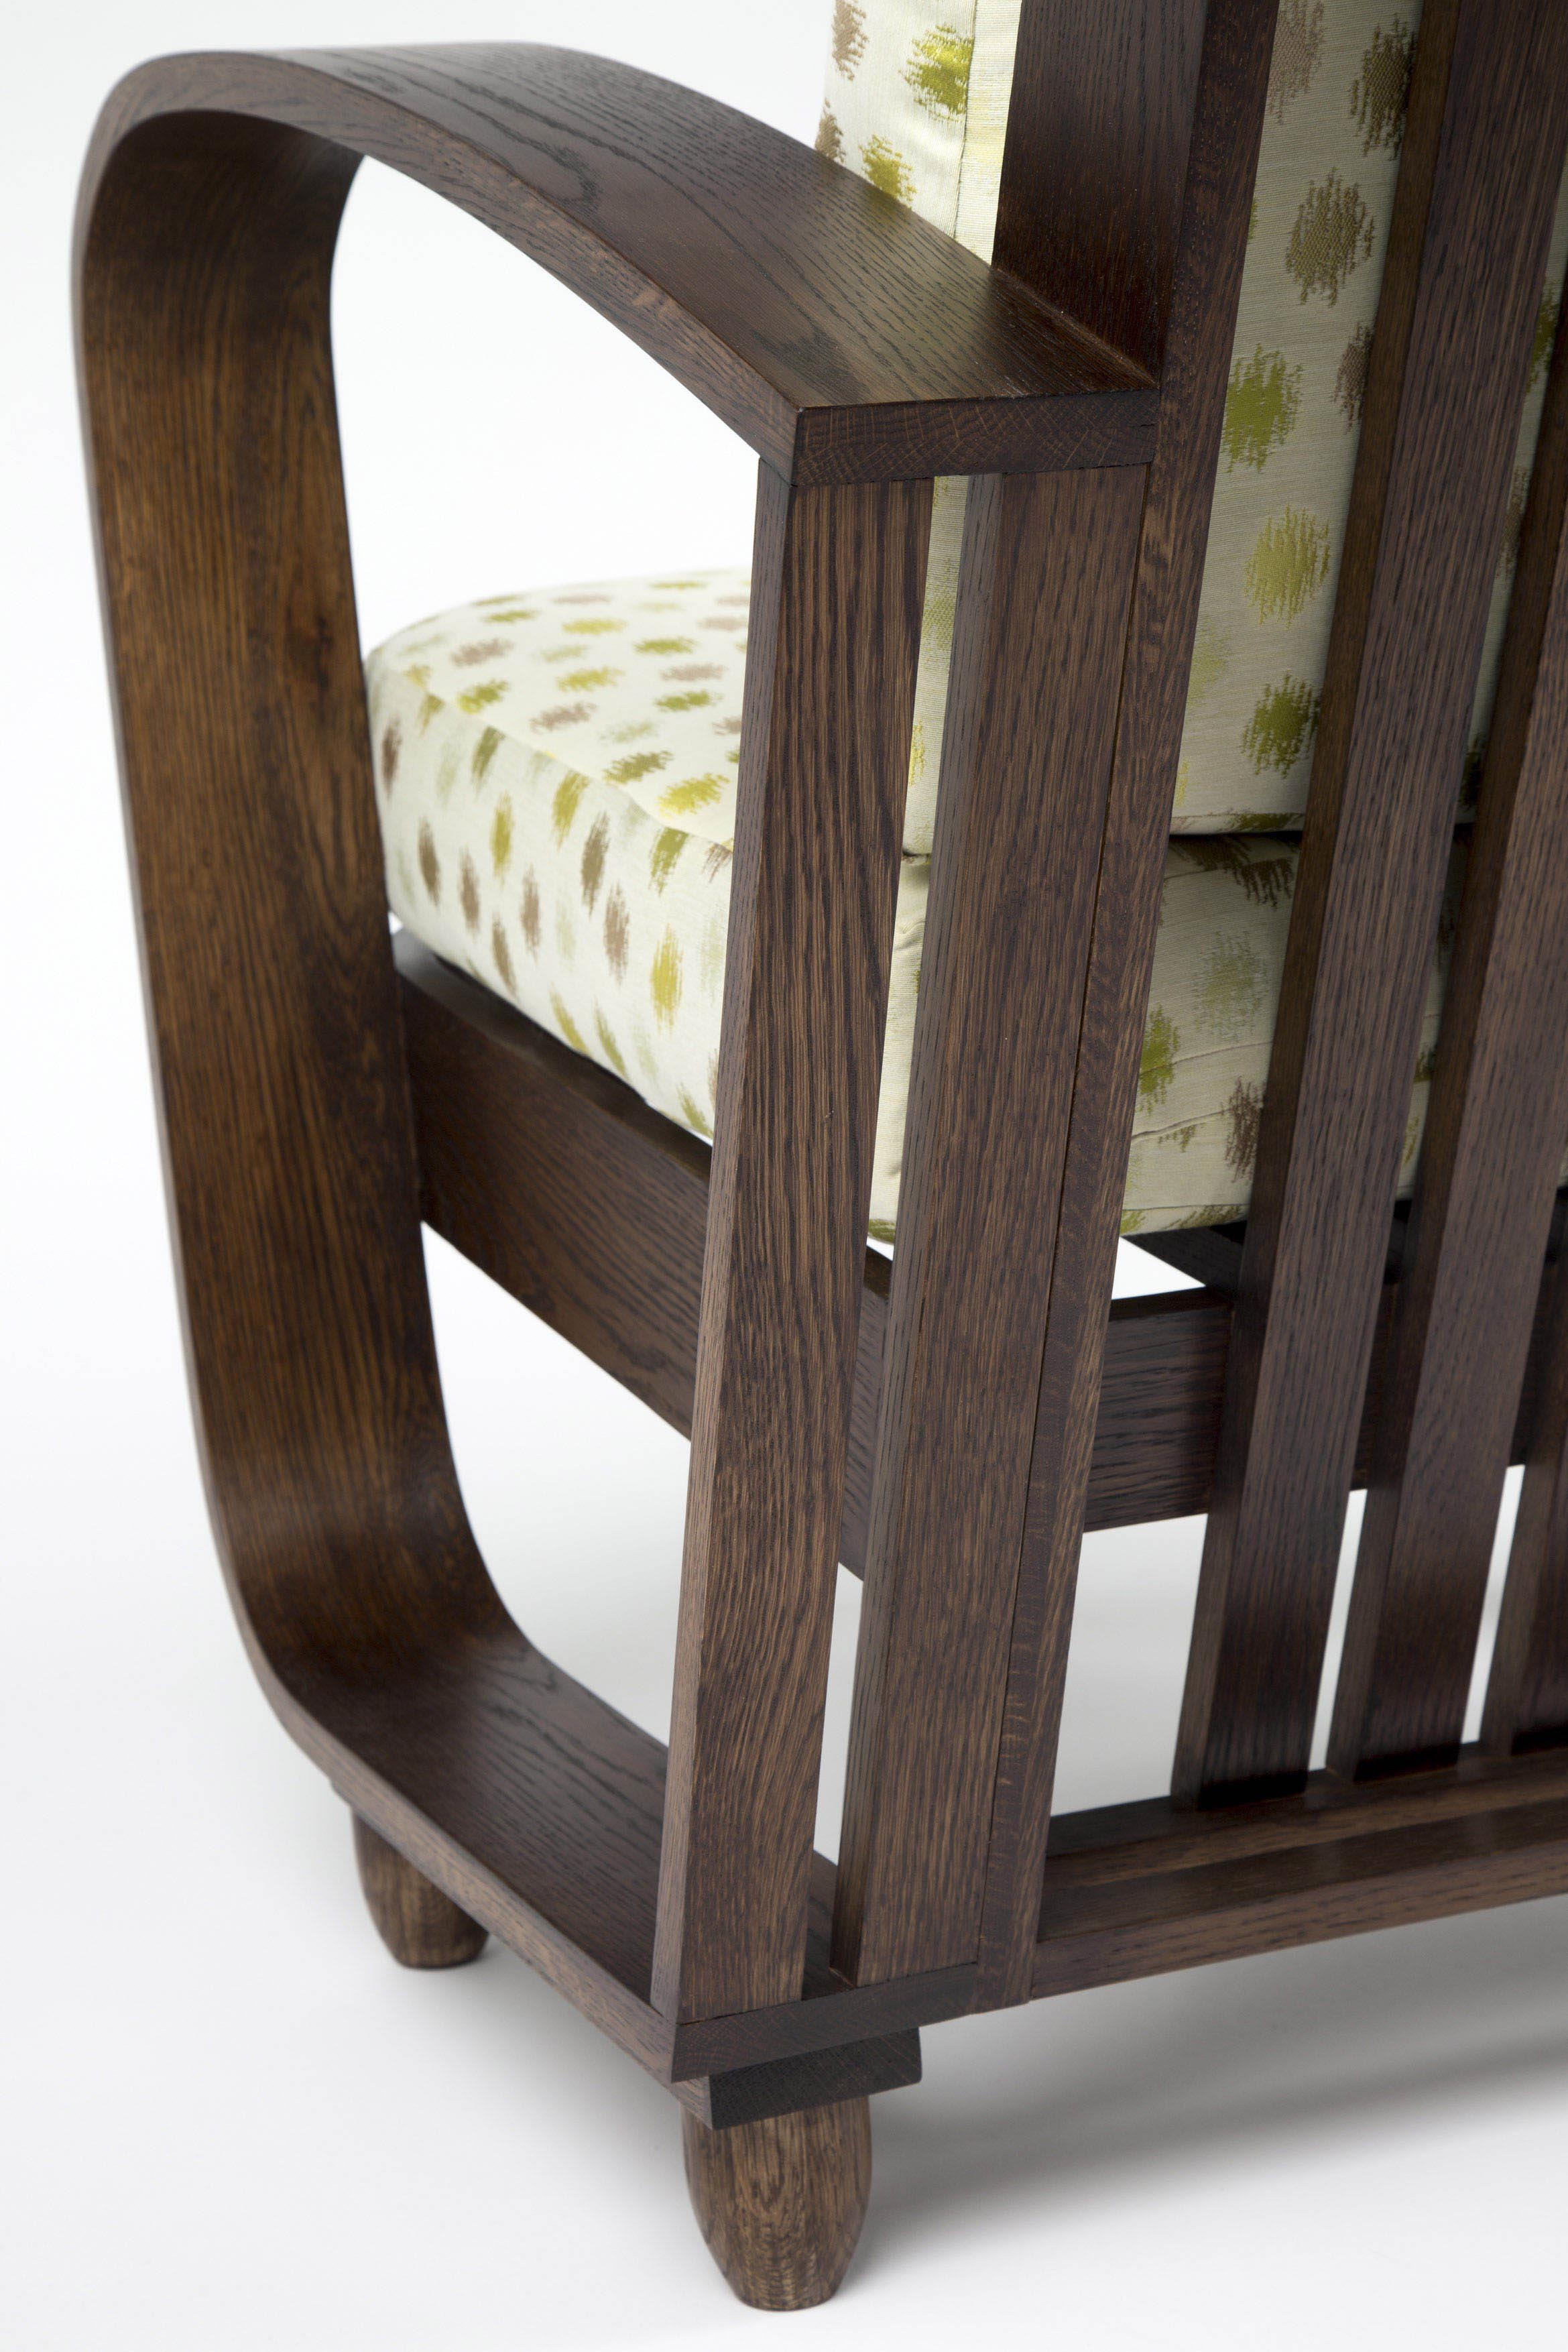 Bent Oak Chair. Jacqui Knight. UCOL.